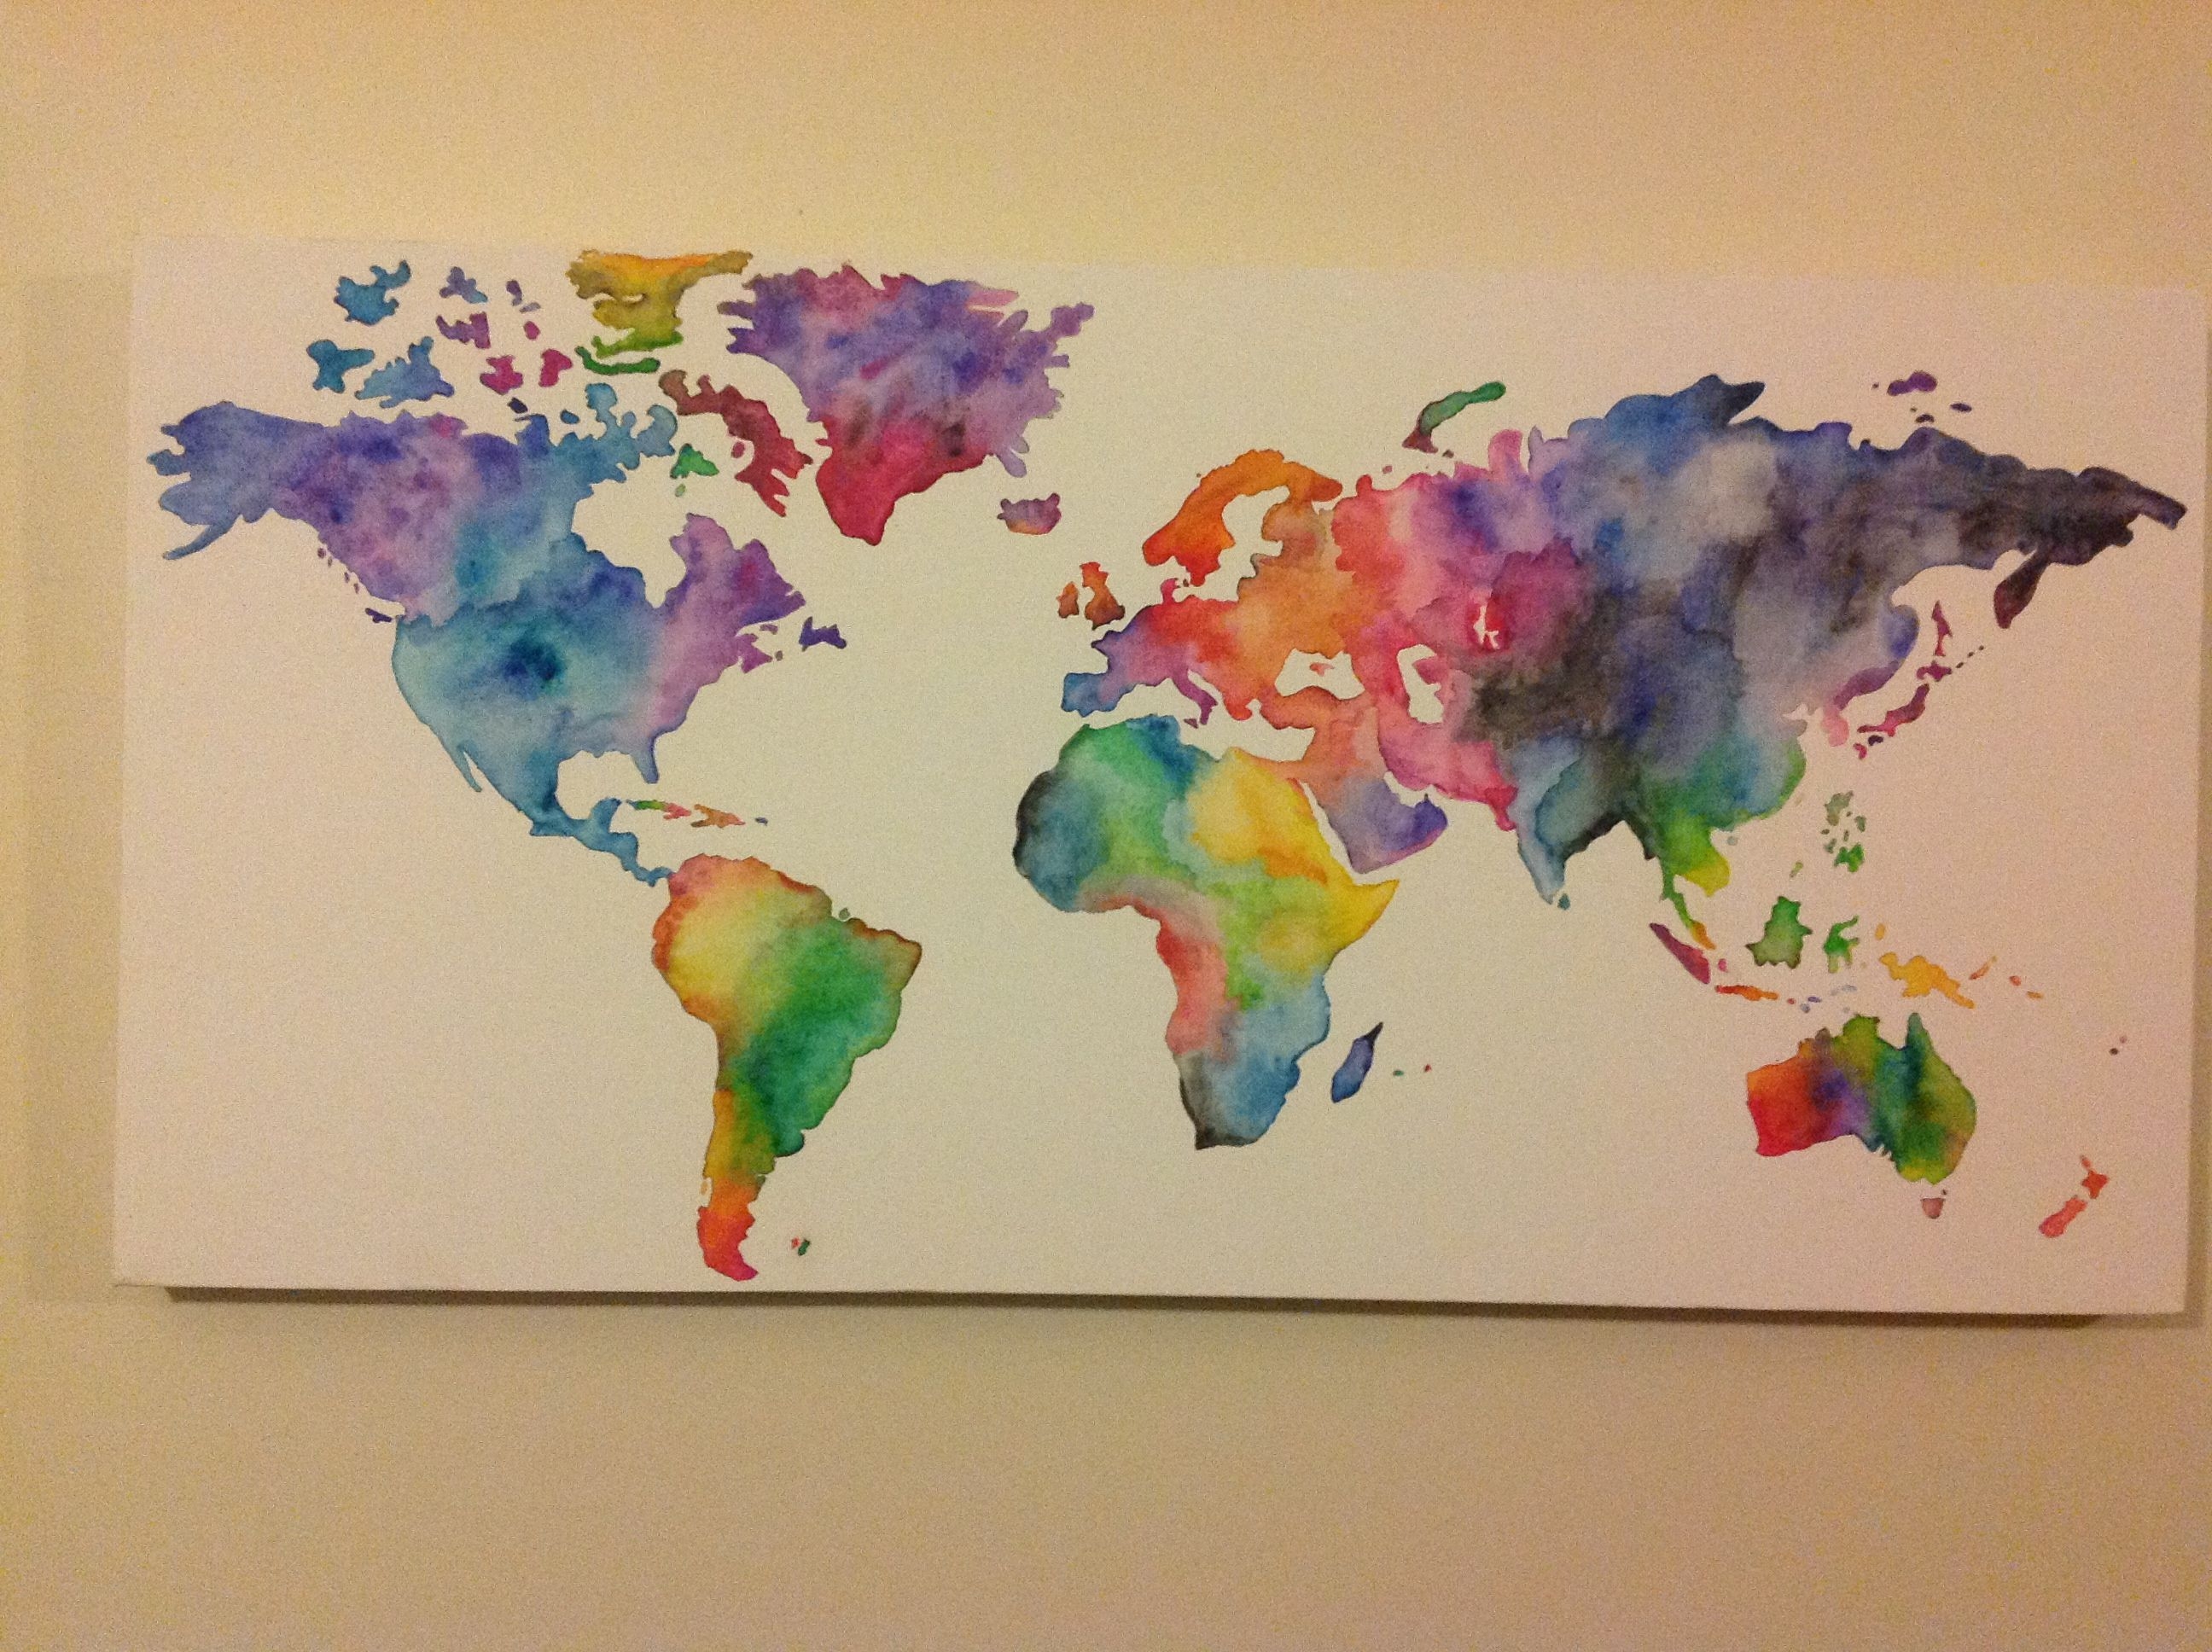 Homemade watercolor world map sketch and paint diy pinterest homemade watercolor world map sketch and paint gumiabroncs Gallery